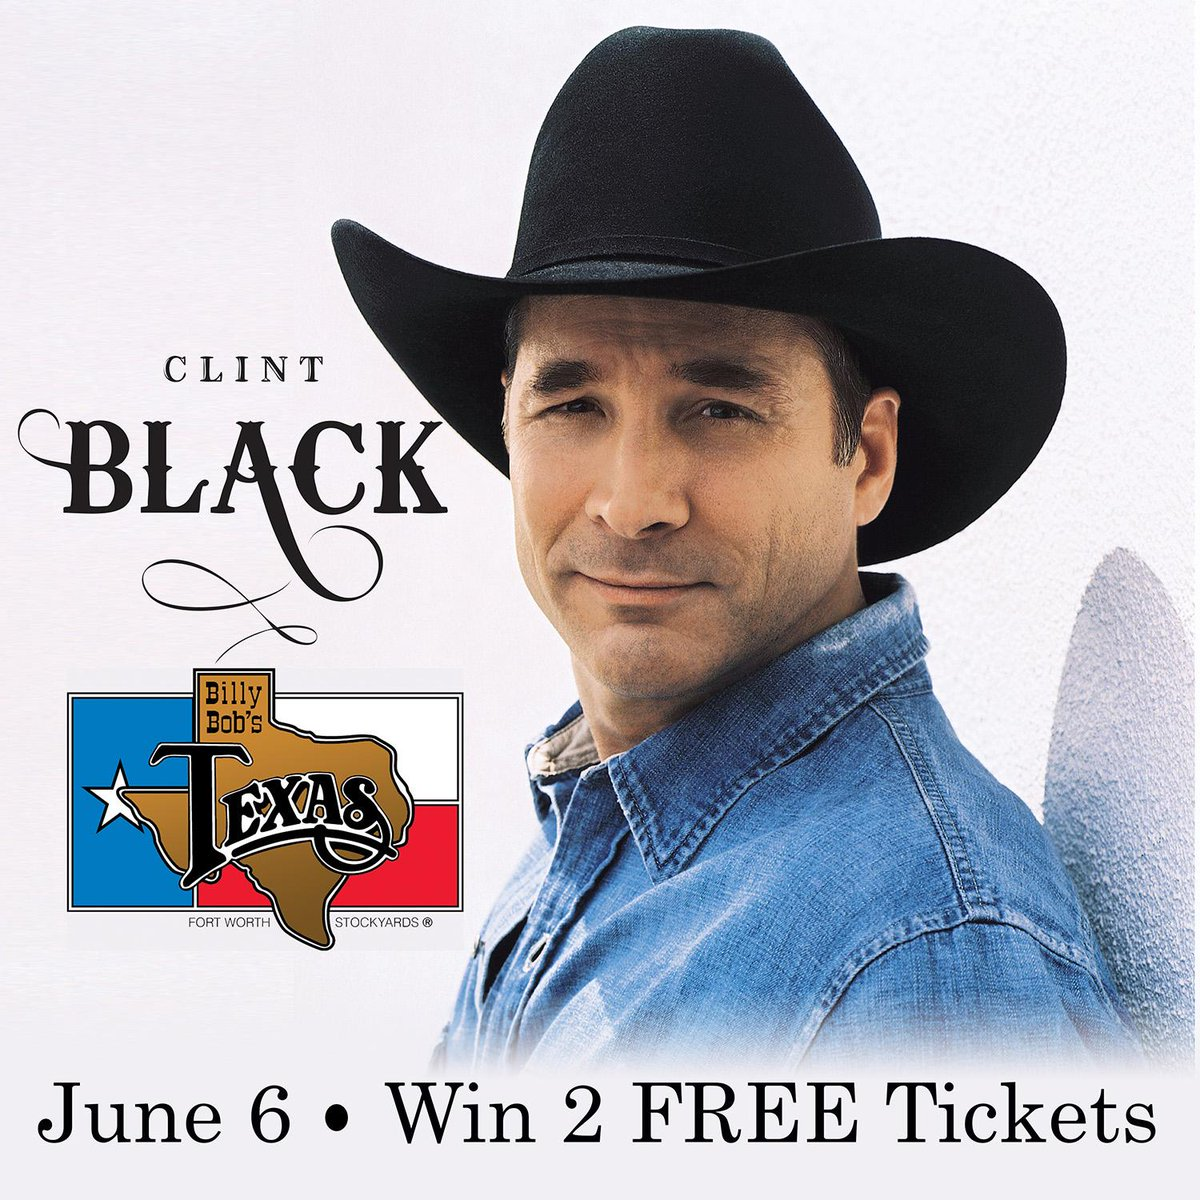 I'll be at @BillyBobsTexas on 6/6! RT this image for a chance to win a pair of tickets! http://t.co/1z6xTwF5r1 http://t.co/Erg1yoziFV